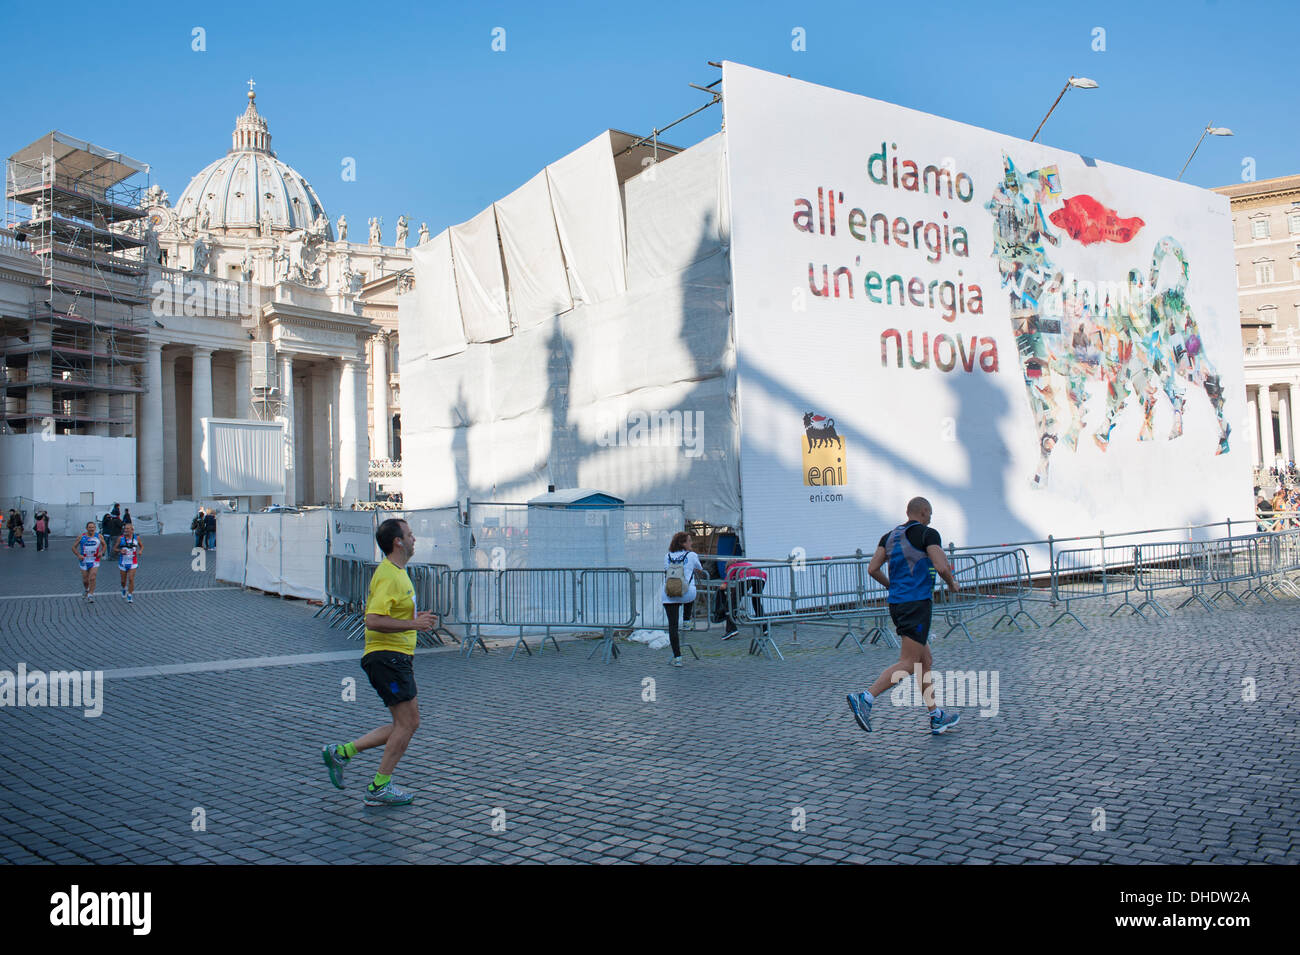 Athletes do warm up before race in Saint Peter's square - Stock Image